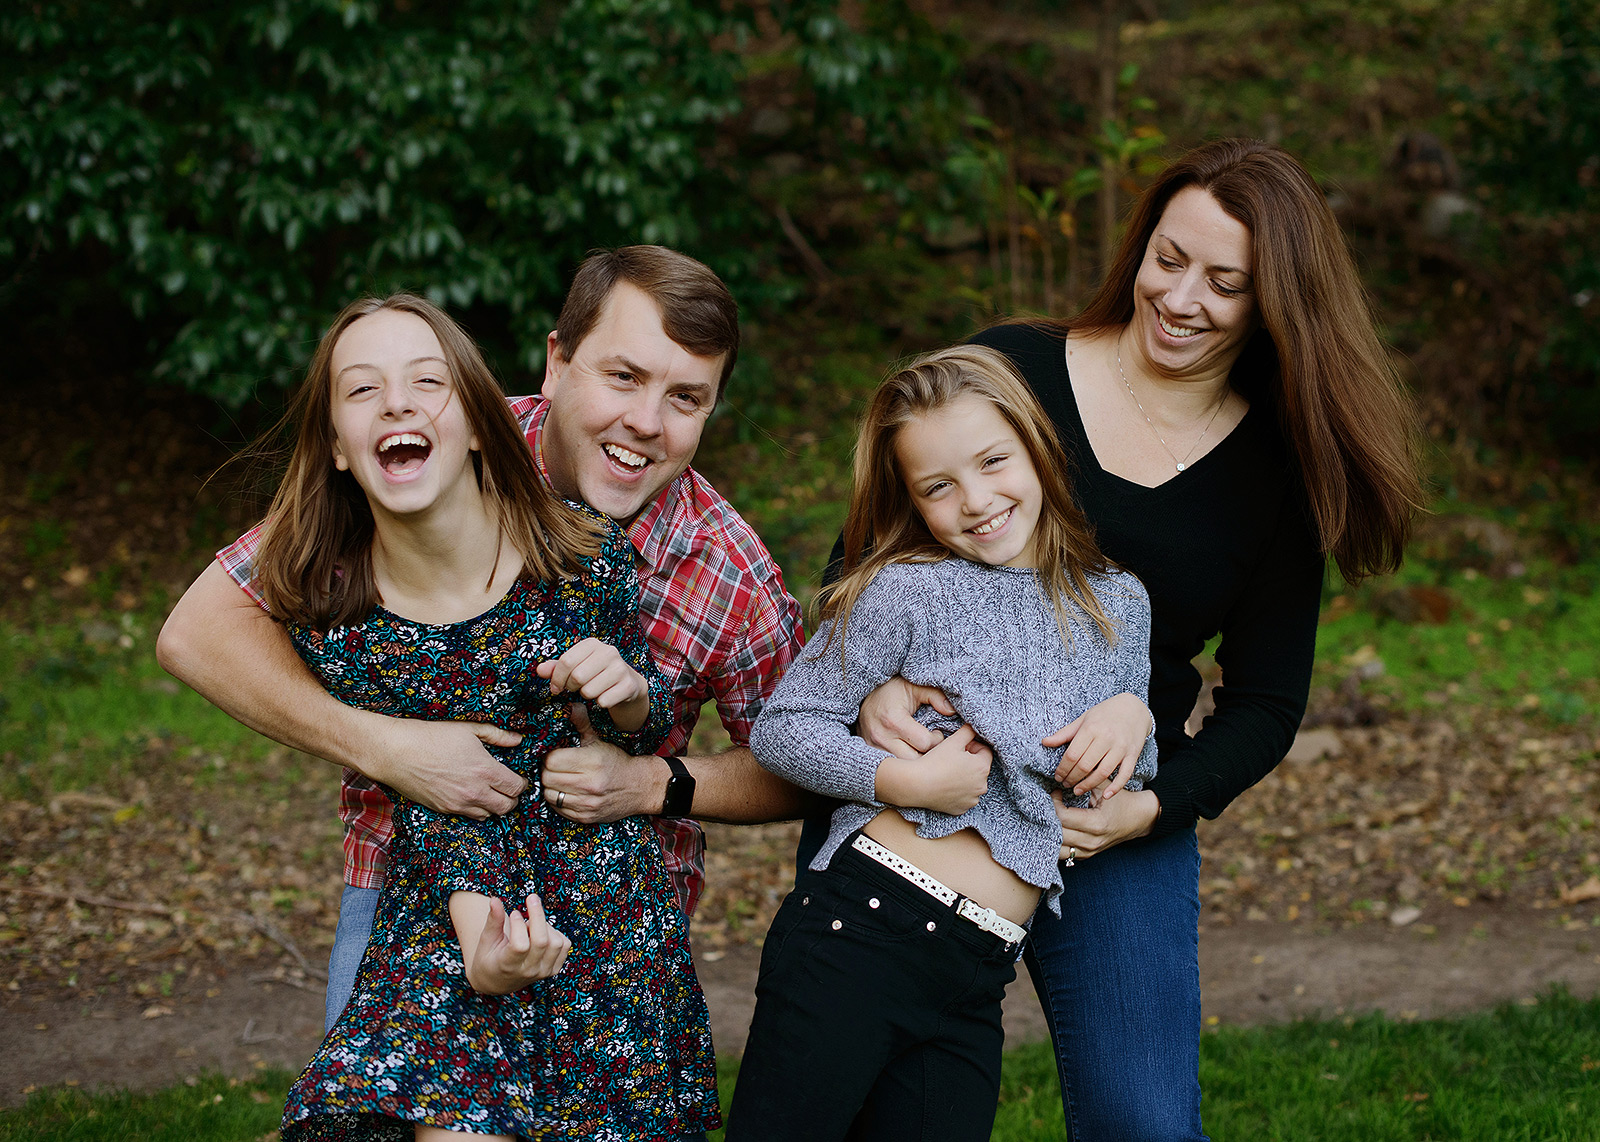 Happy family photo in Saratoga outdoors during fall